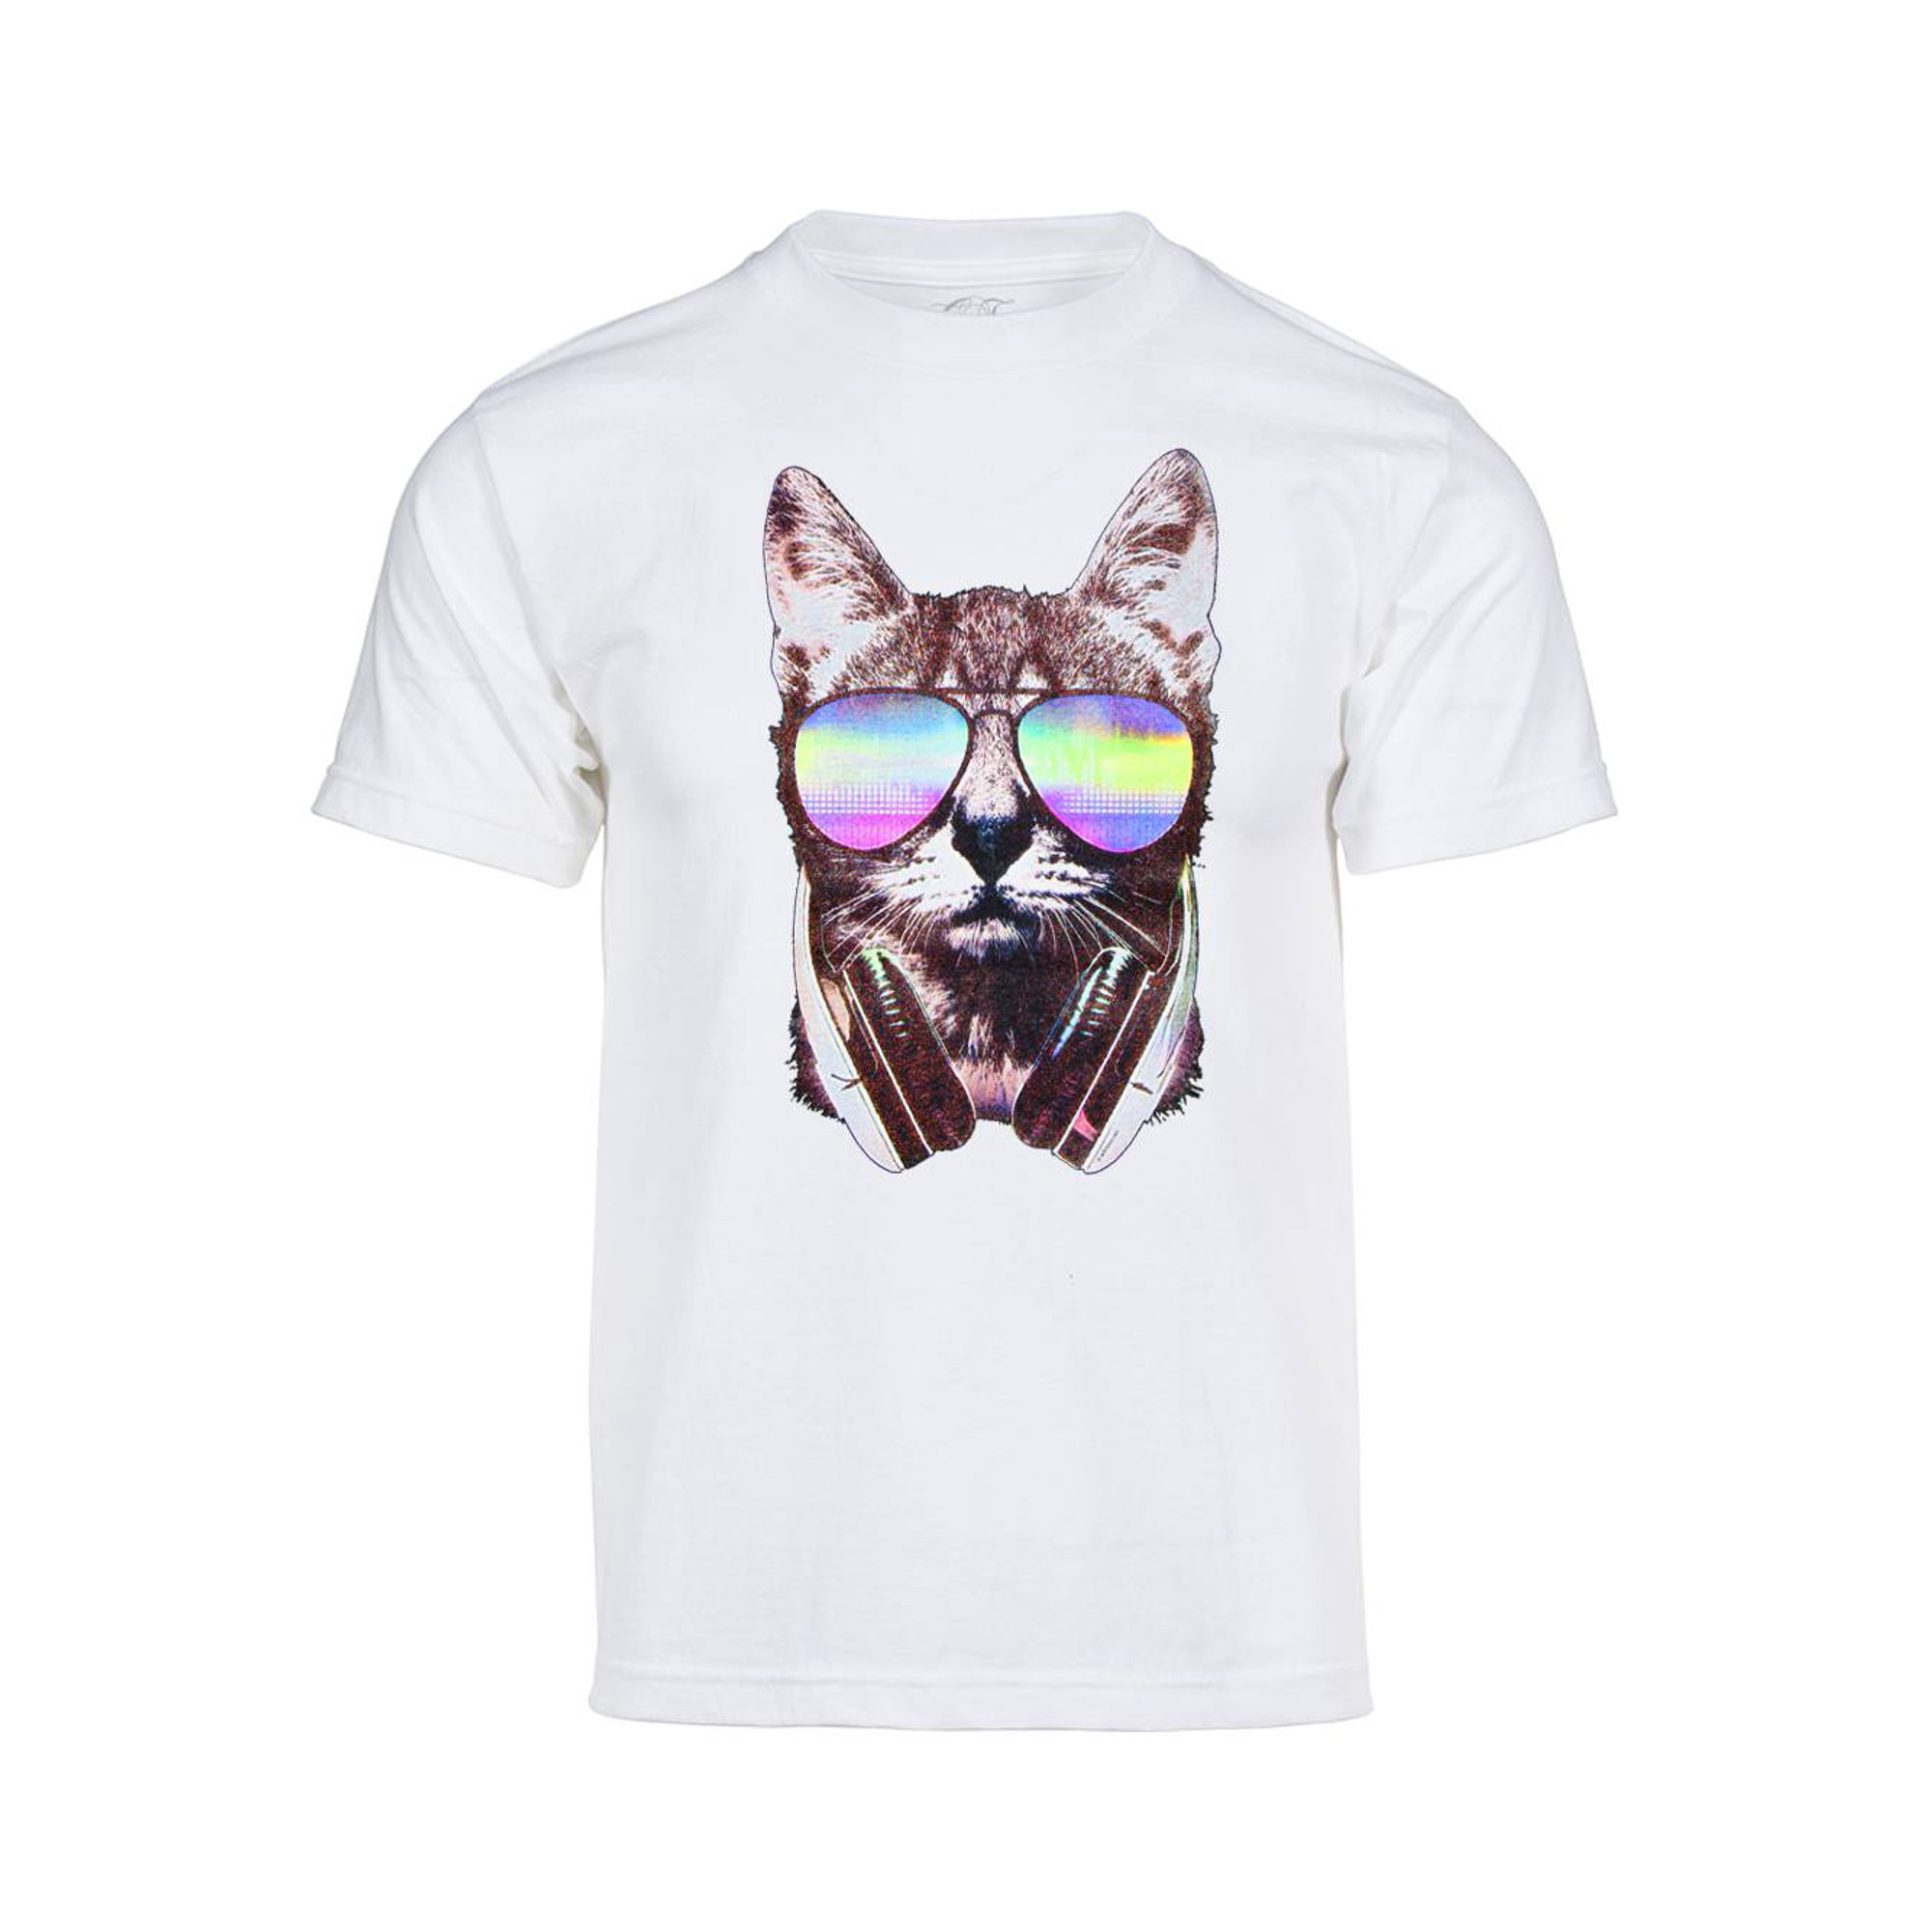 8bf2b6afc06ee Mens DJ Cat Short-Sleeve T-Shirt - White - 3X-Large